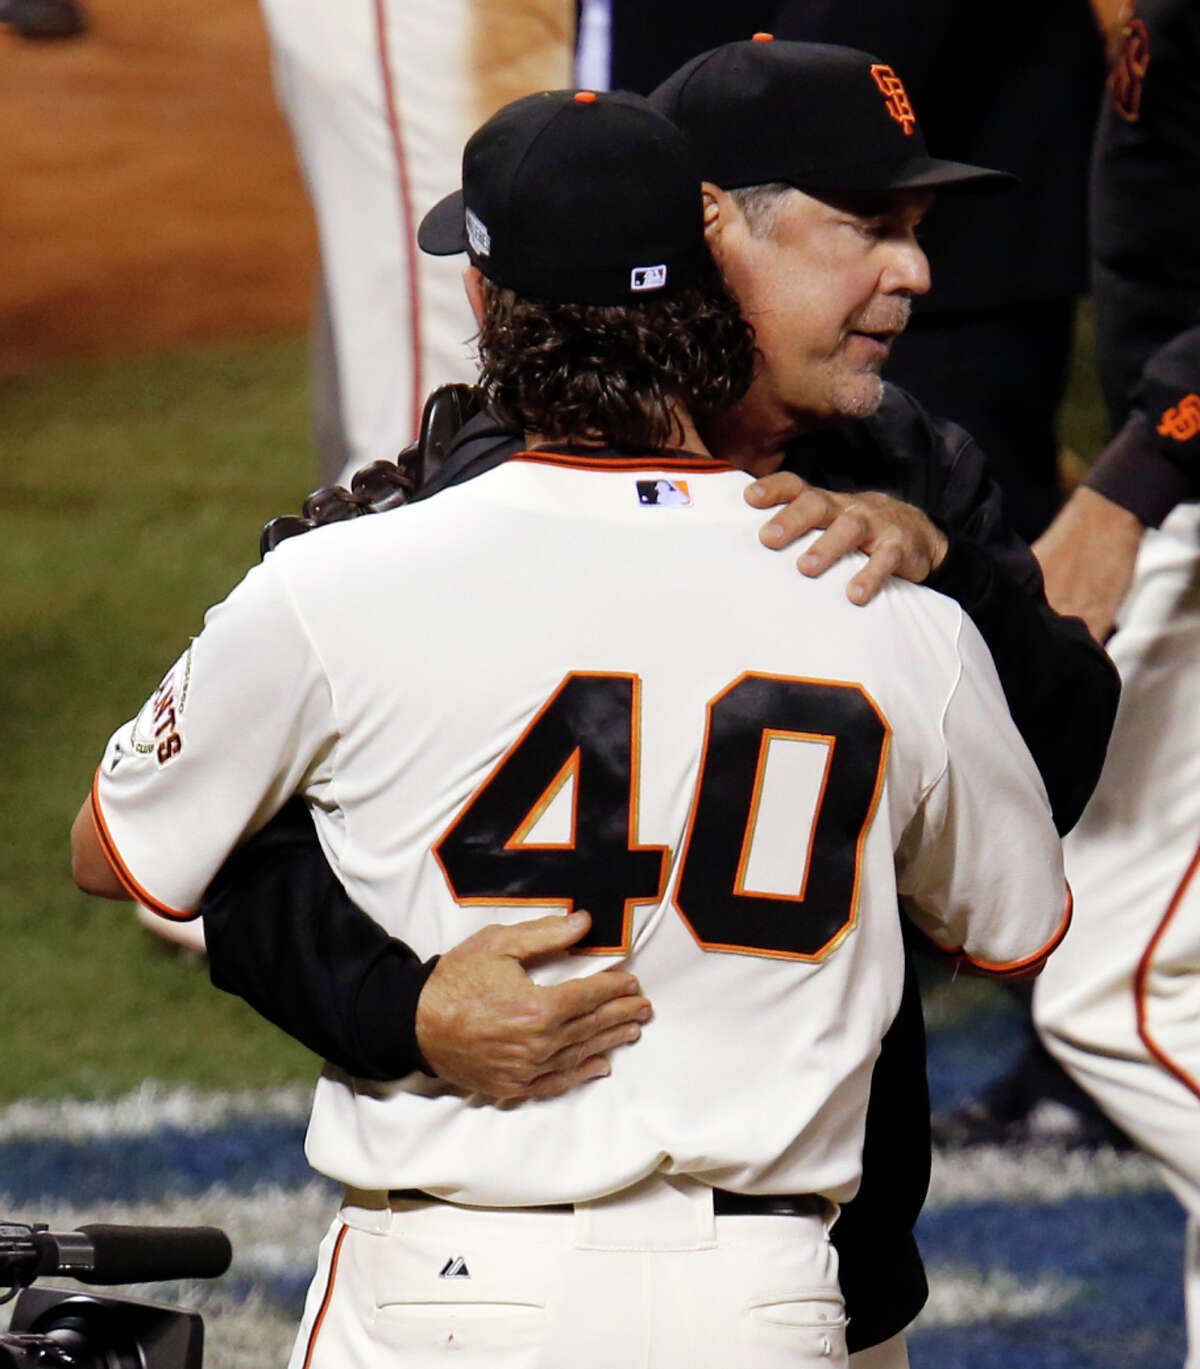 Giants manager Bruce Bochy congratulates Madison Bumgarner after the Giants win game five of the World Series at AT&T Park in San Francisco, California, on Sunday Oct. 26, 2014.